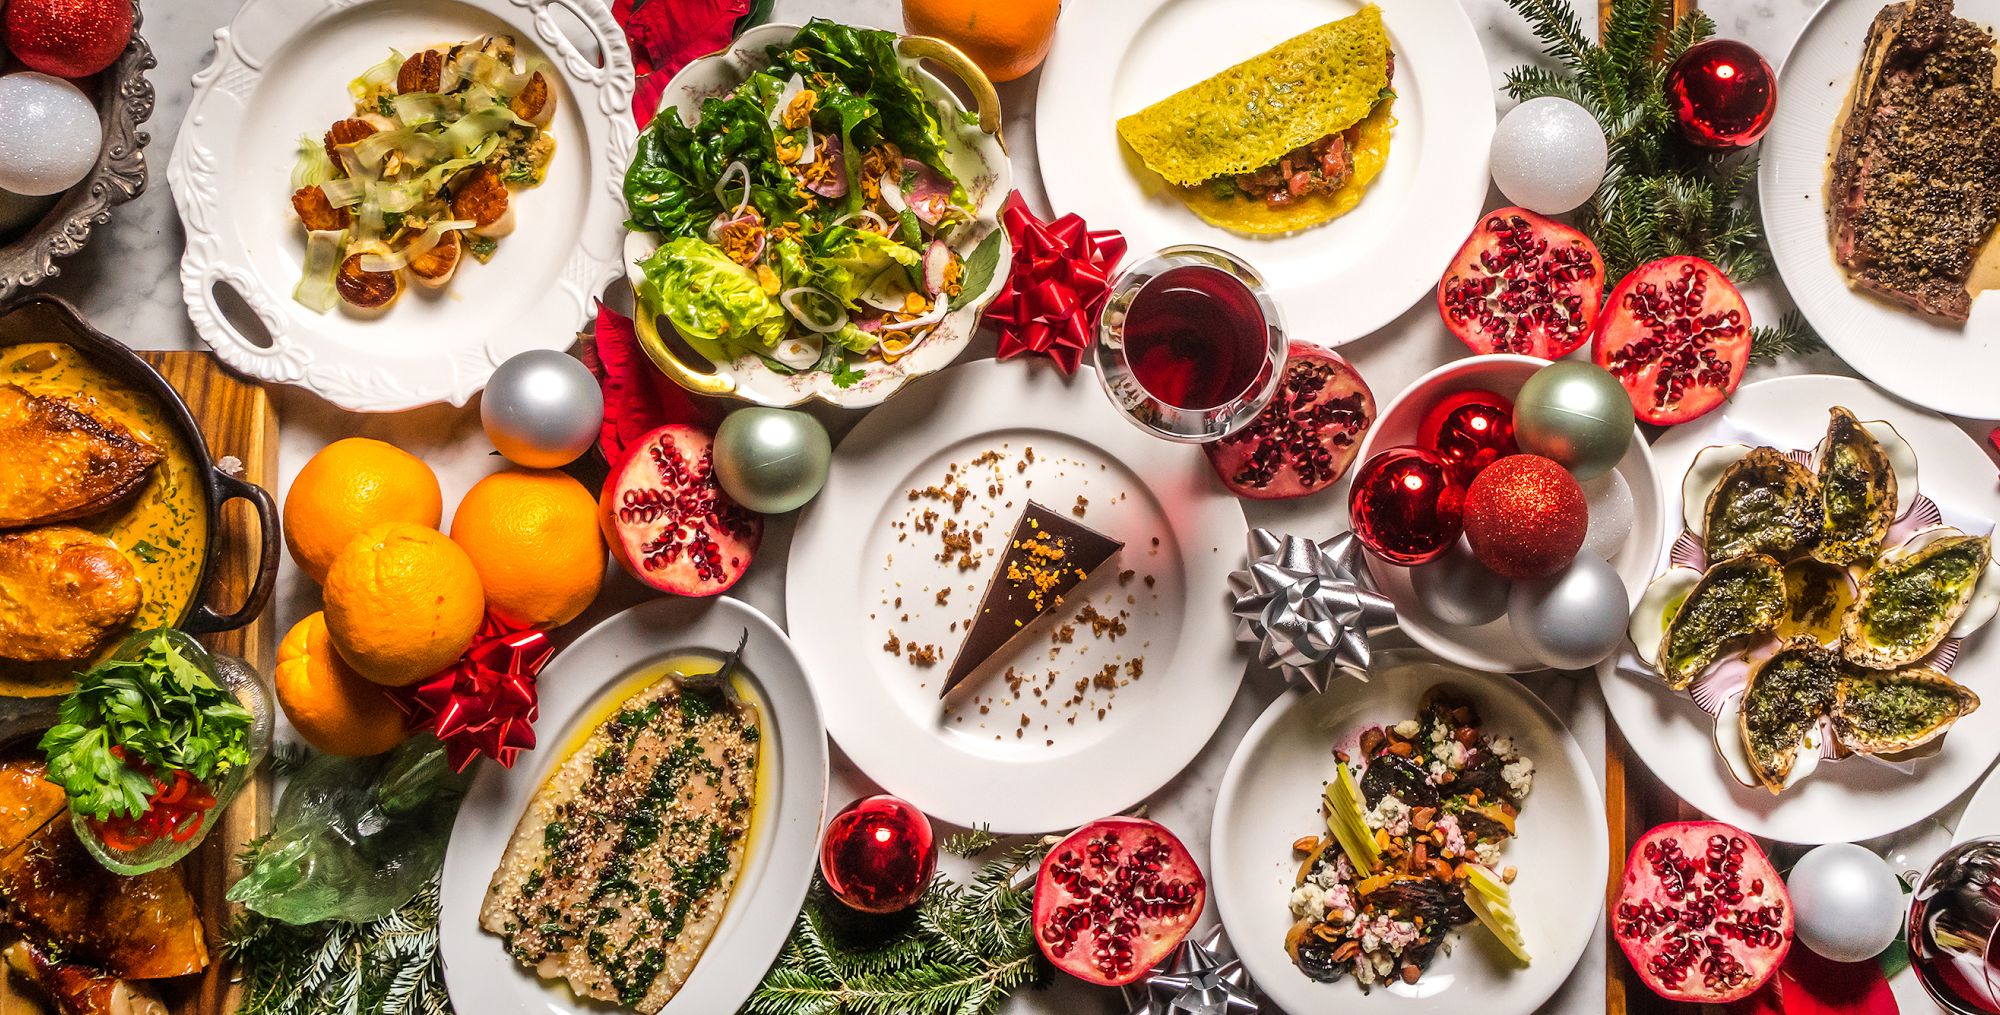 Restaurants Open On Christmas Day 2021 Westchester, Ny 21 Best Restaurants Open On Christmas Day Nyc To Reserve Now